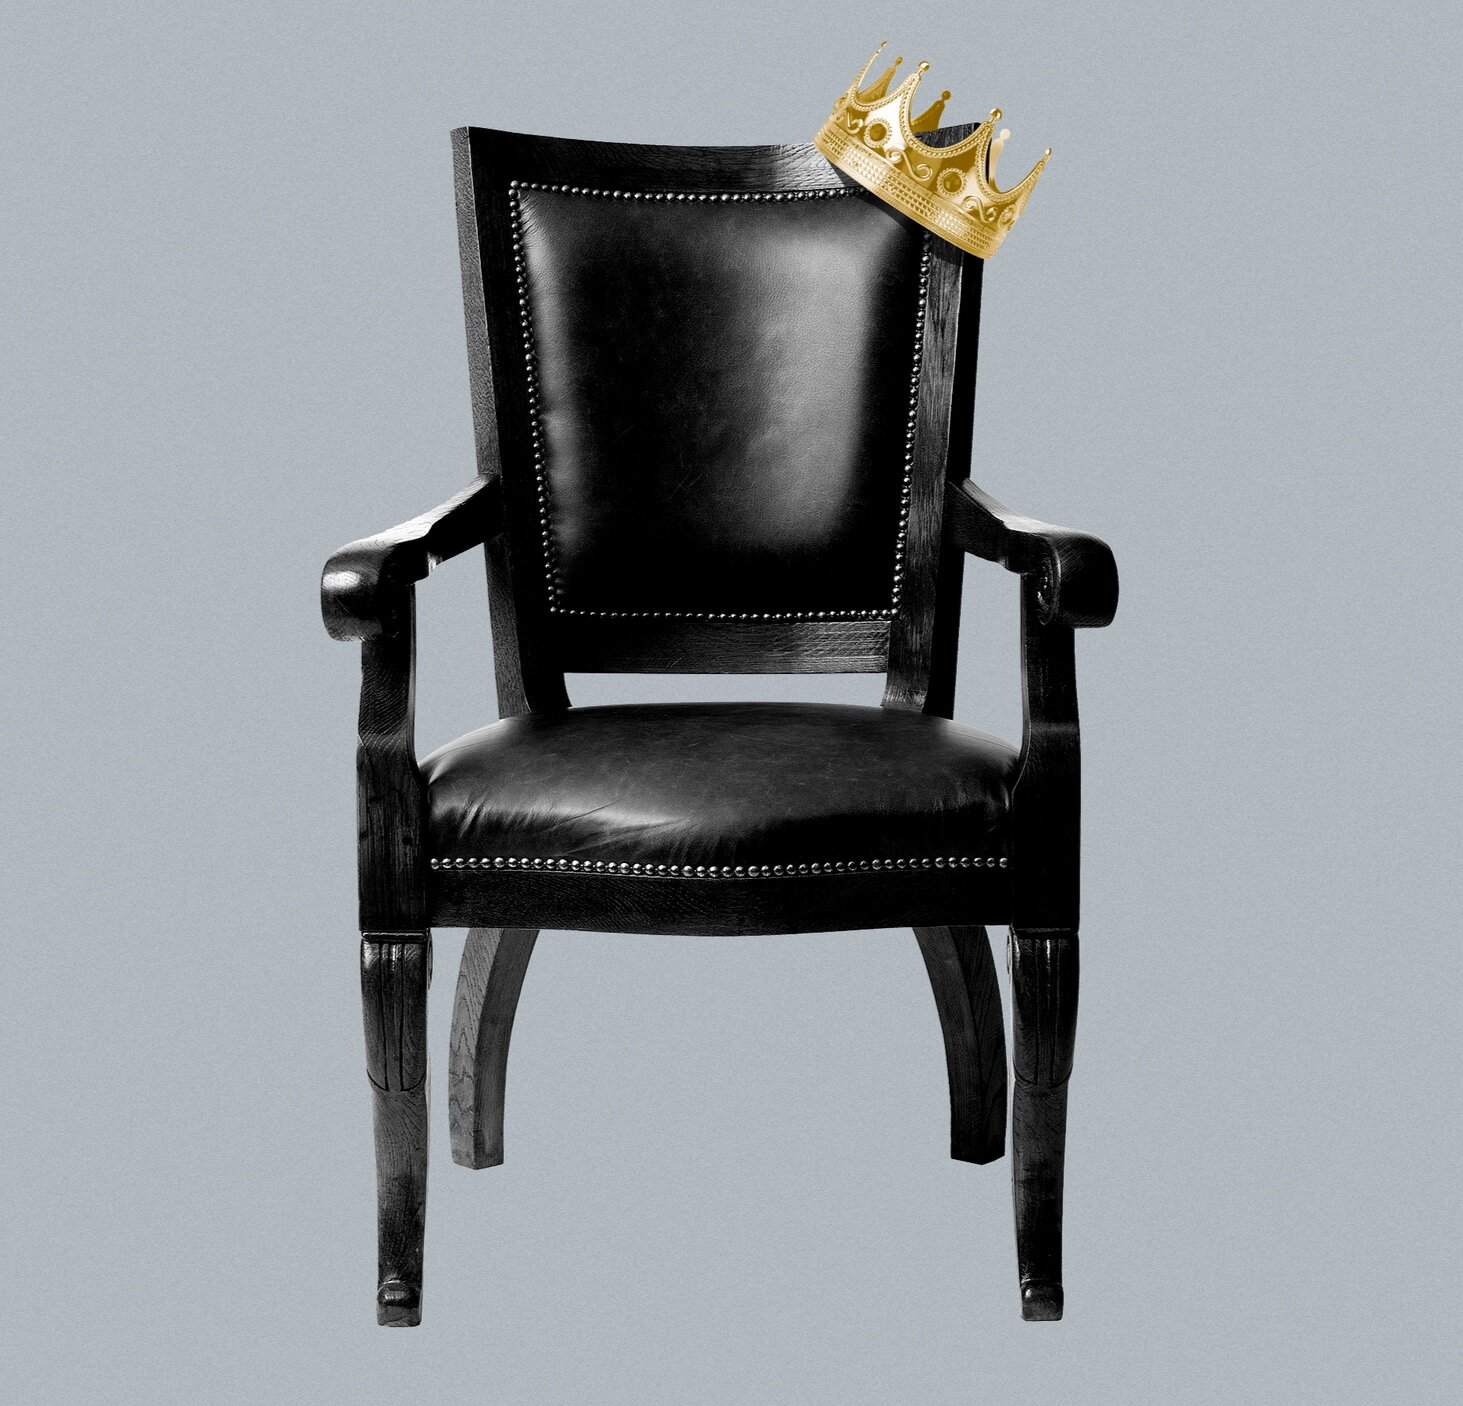 An image of a chair with a crown and a grey background added by artist Jim Cooke.